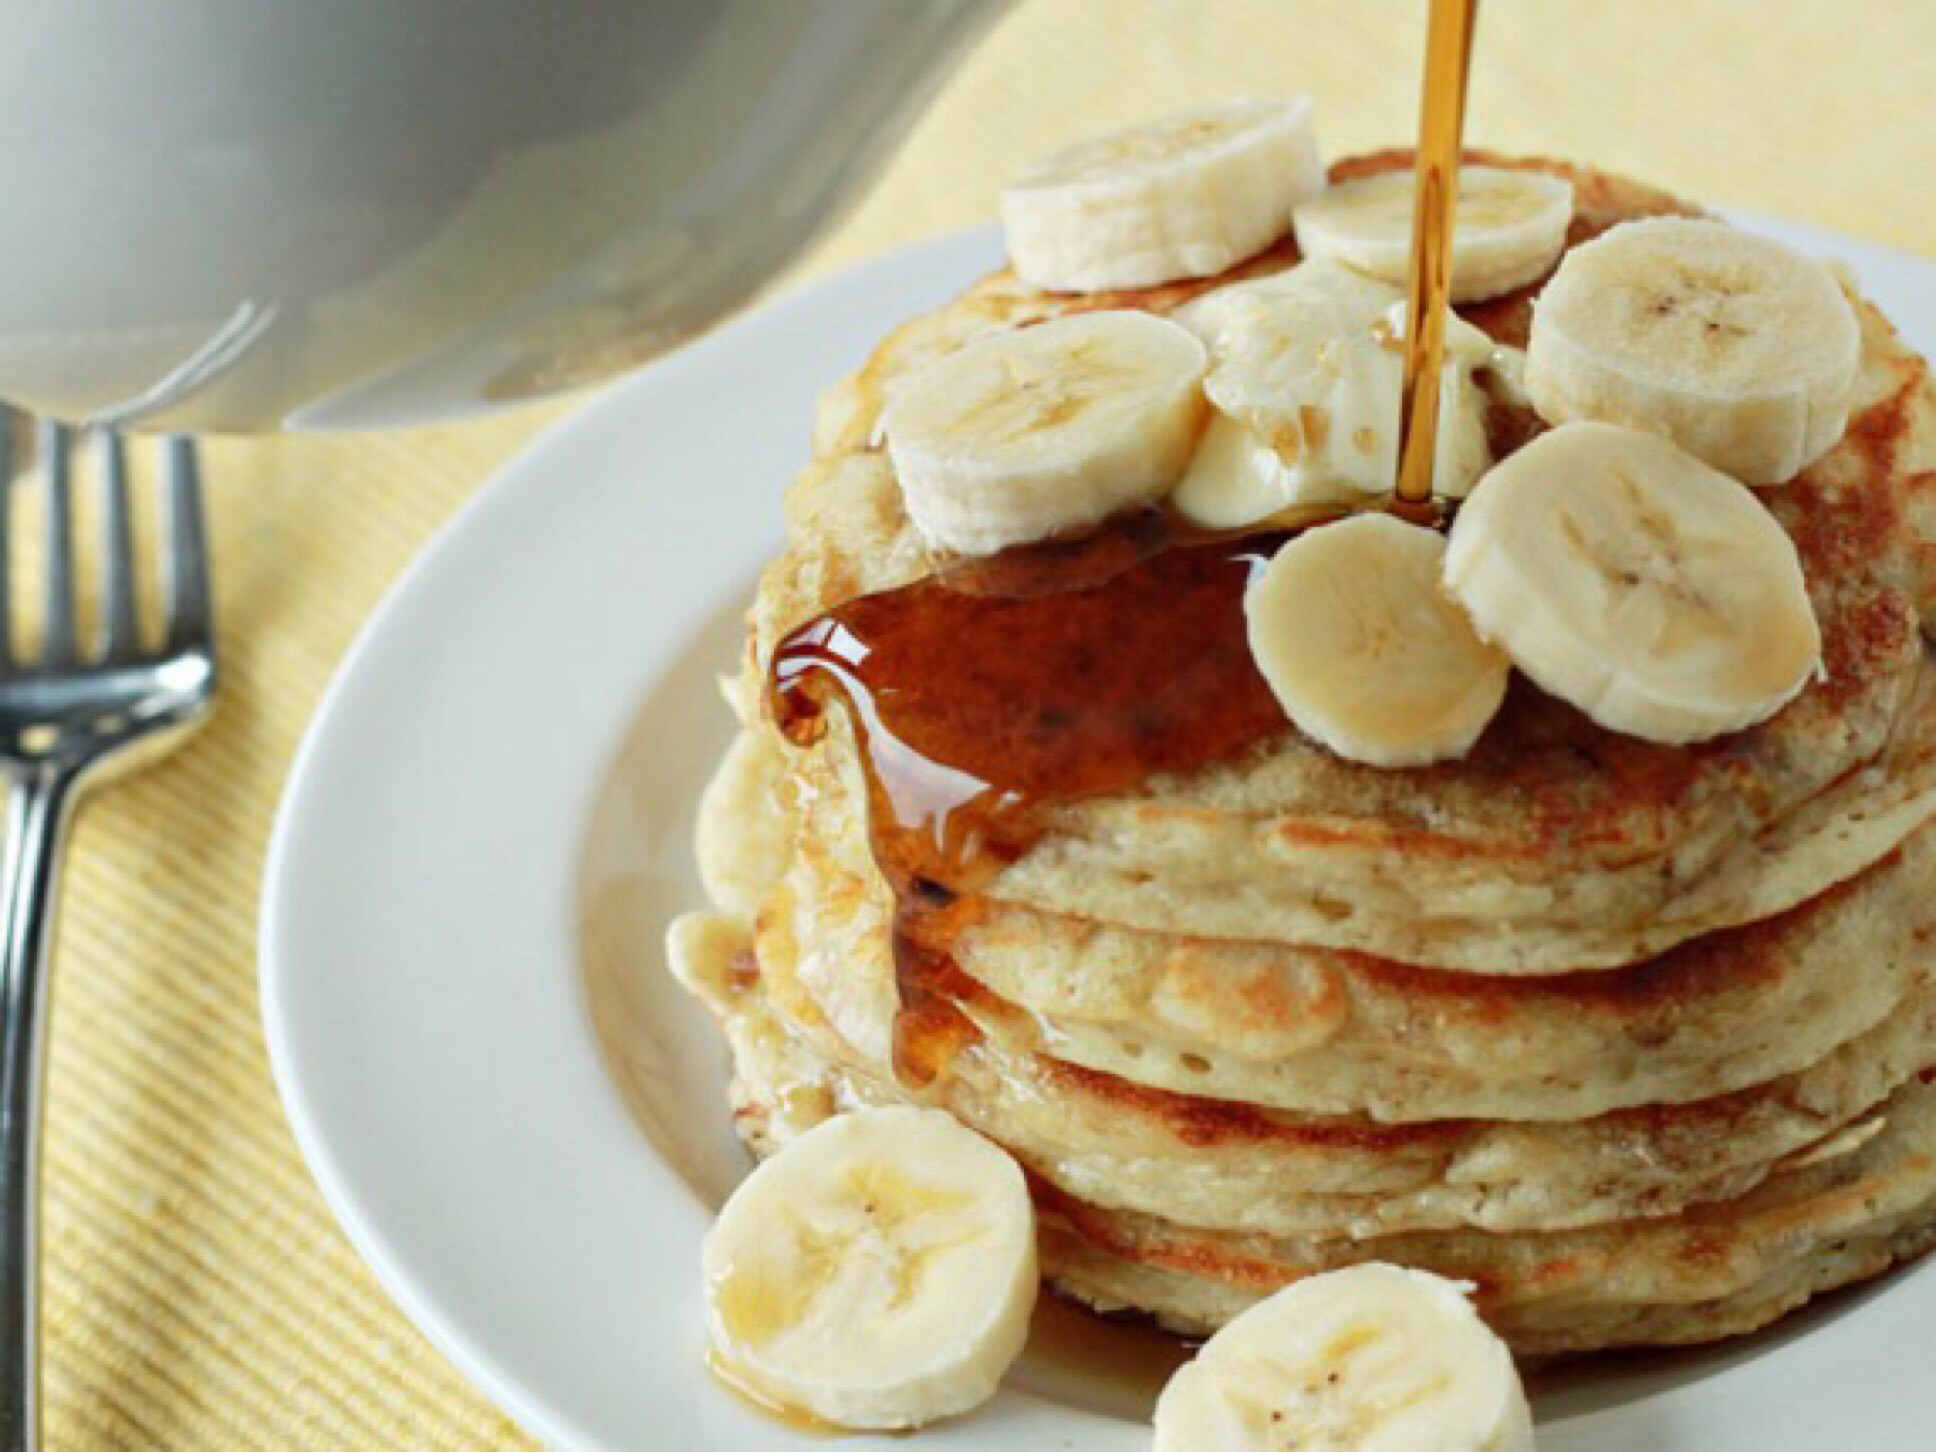 banana pancakes - breakfast in bed